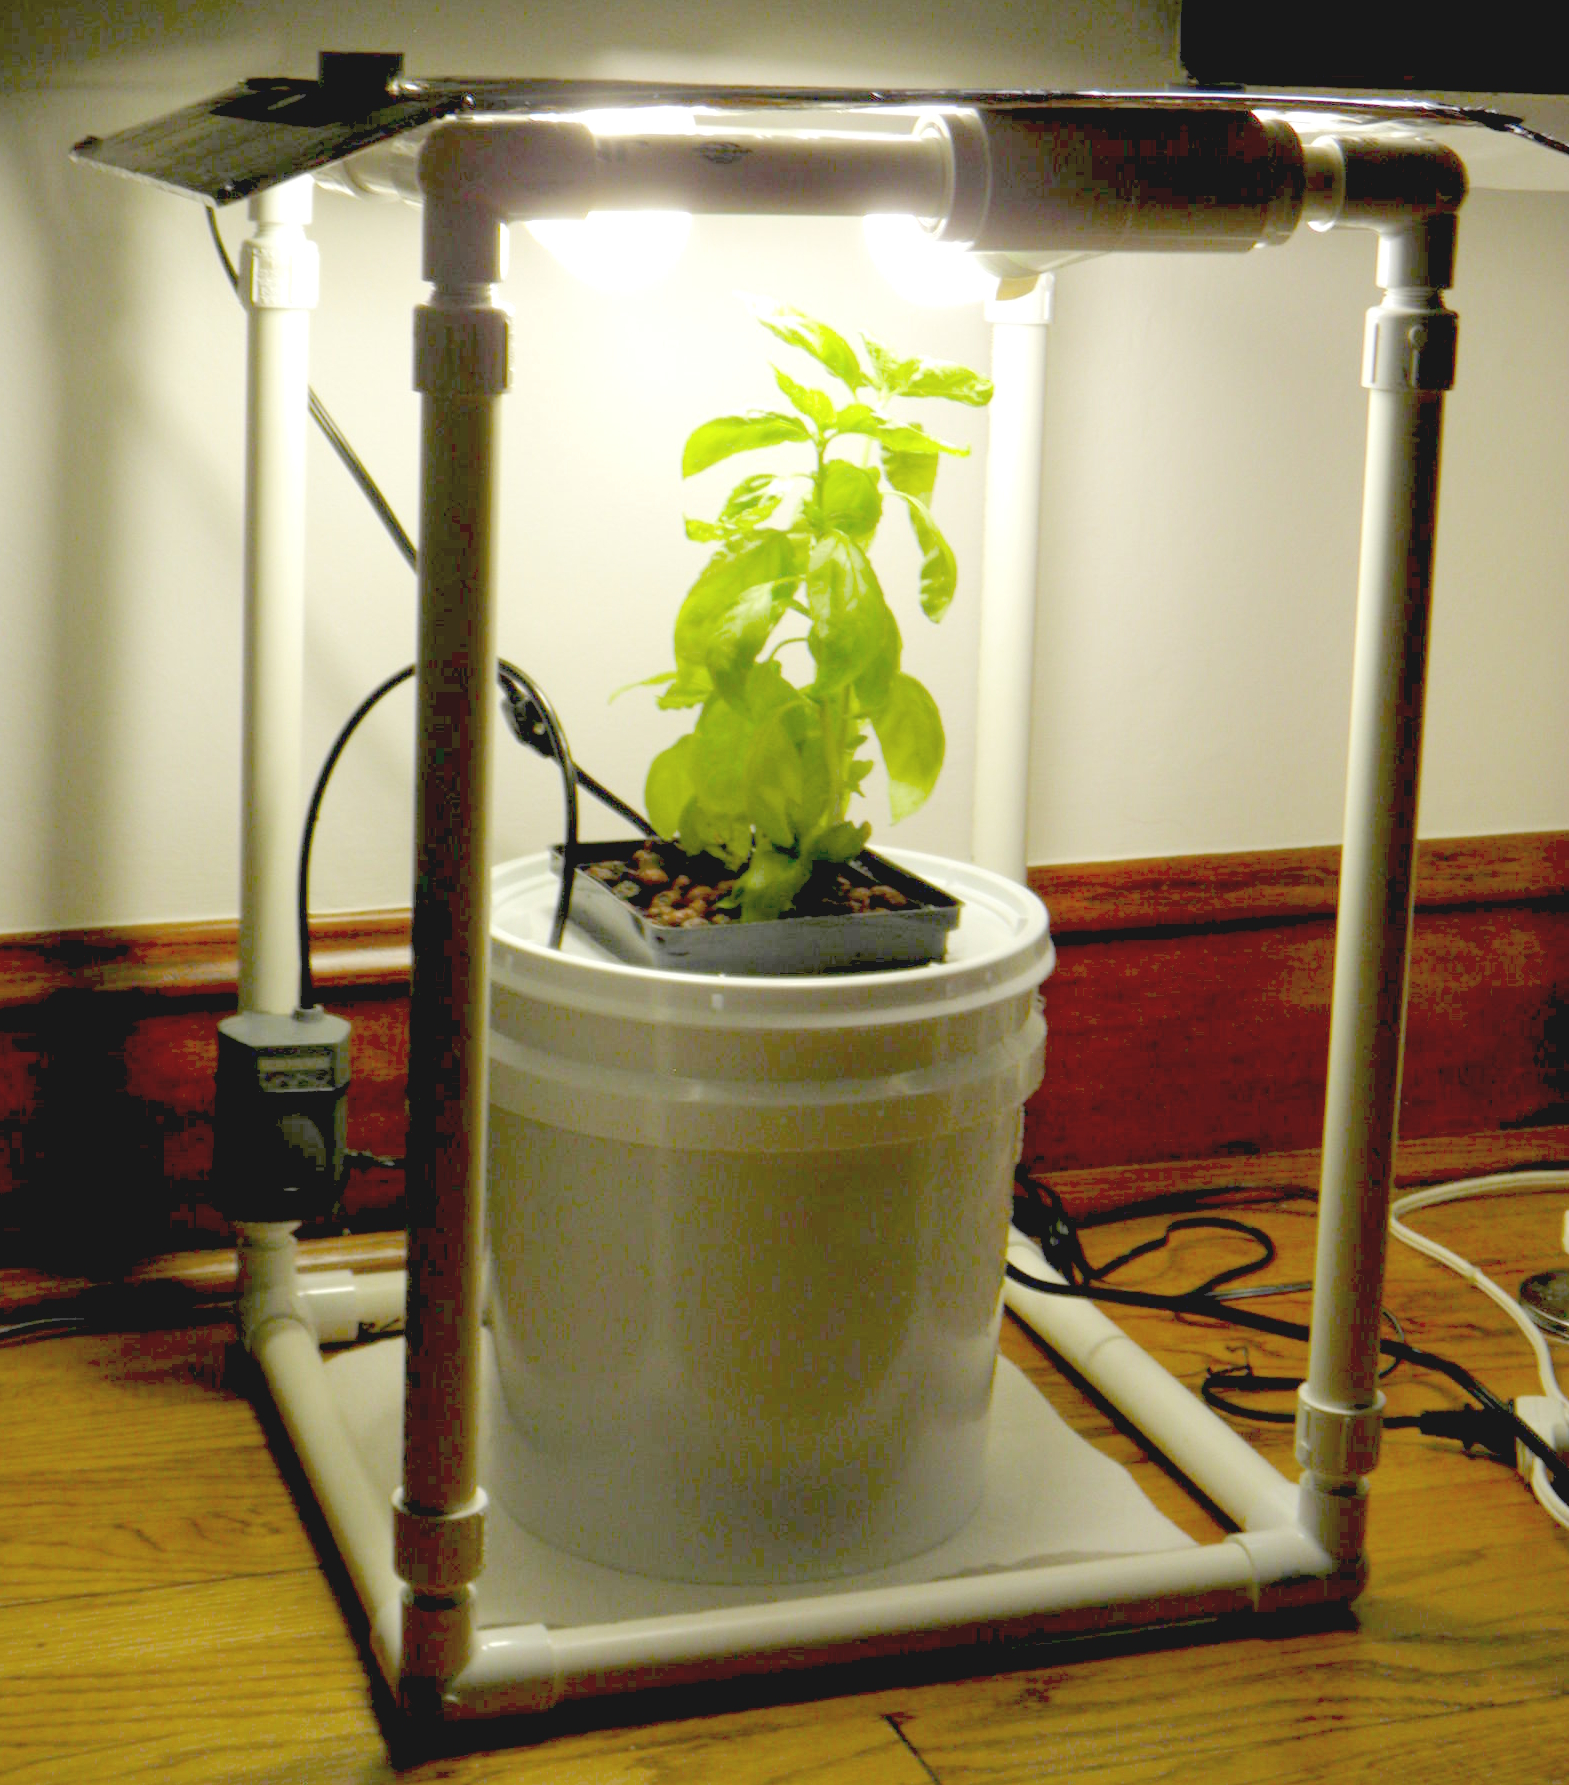 The Basil Box - Compact and Affordable Hydroponic Deep Water Cultivation